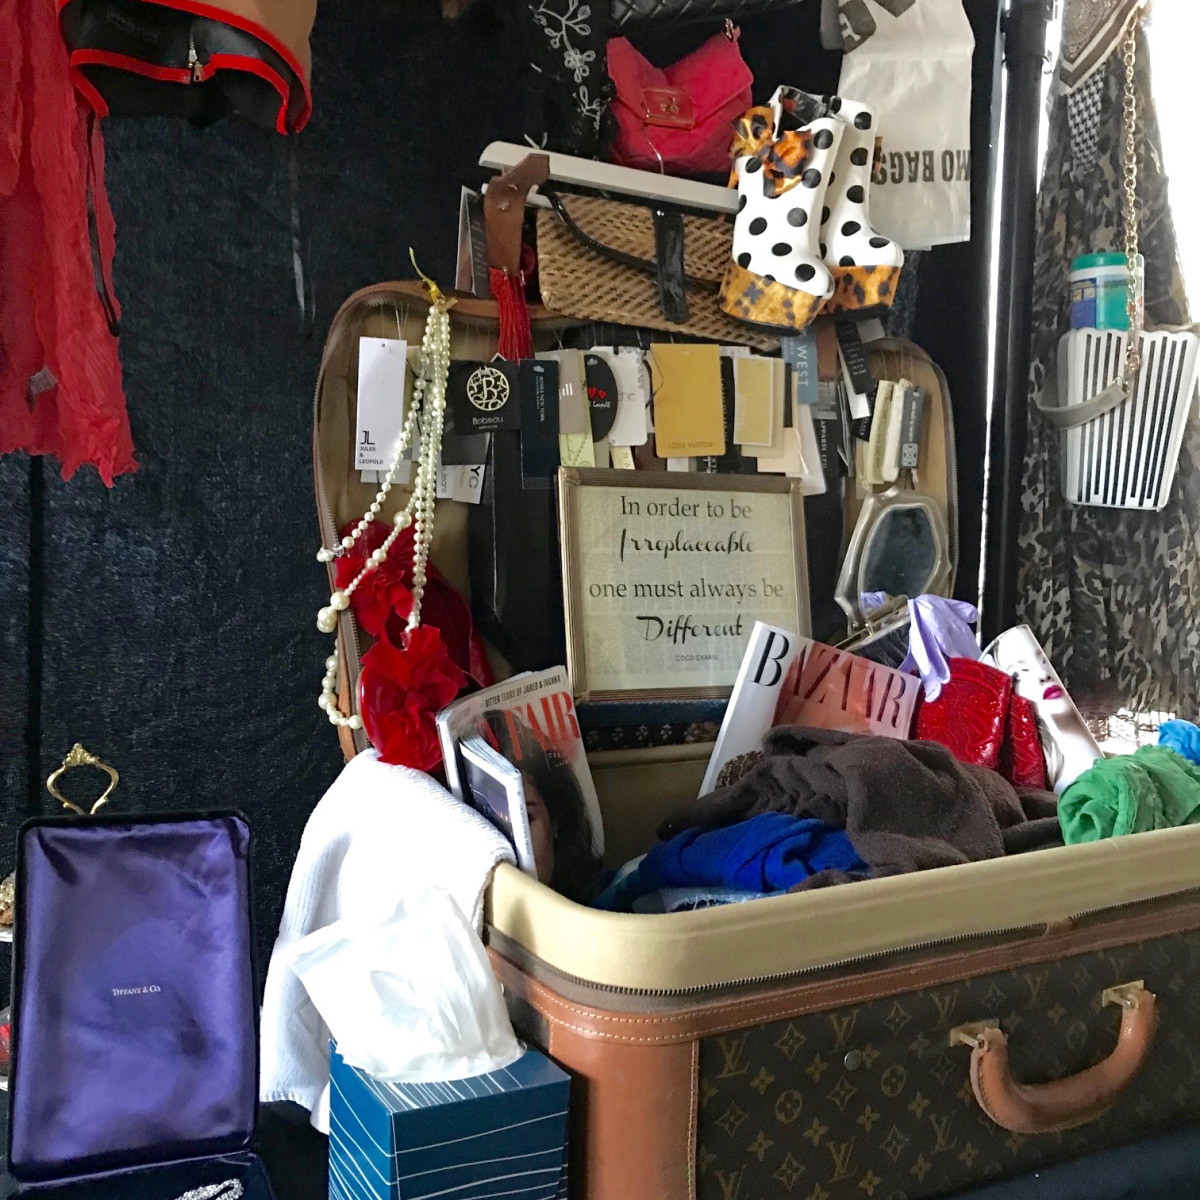 Gayla Bentley fashion funeral recovered possessions from Hurricane Harvey